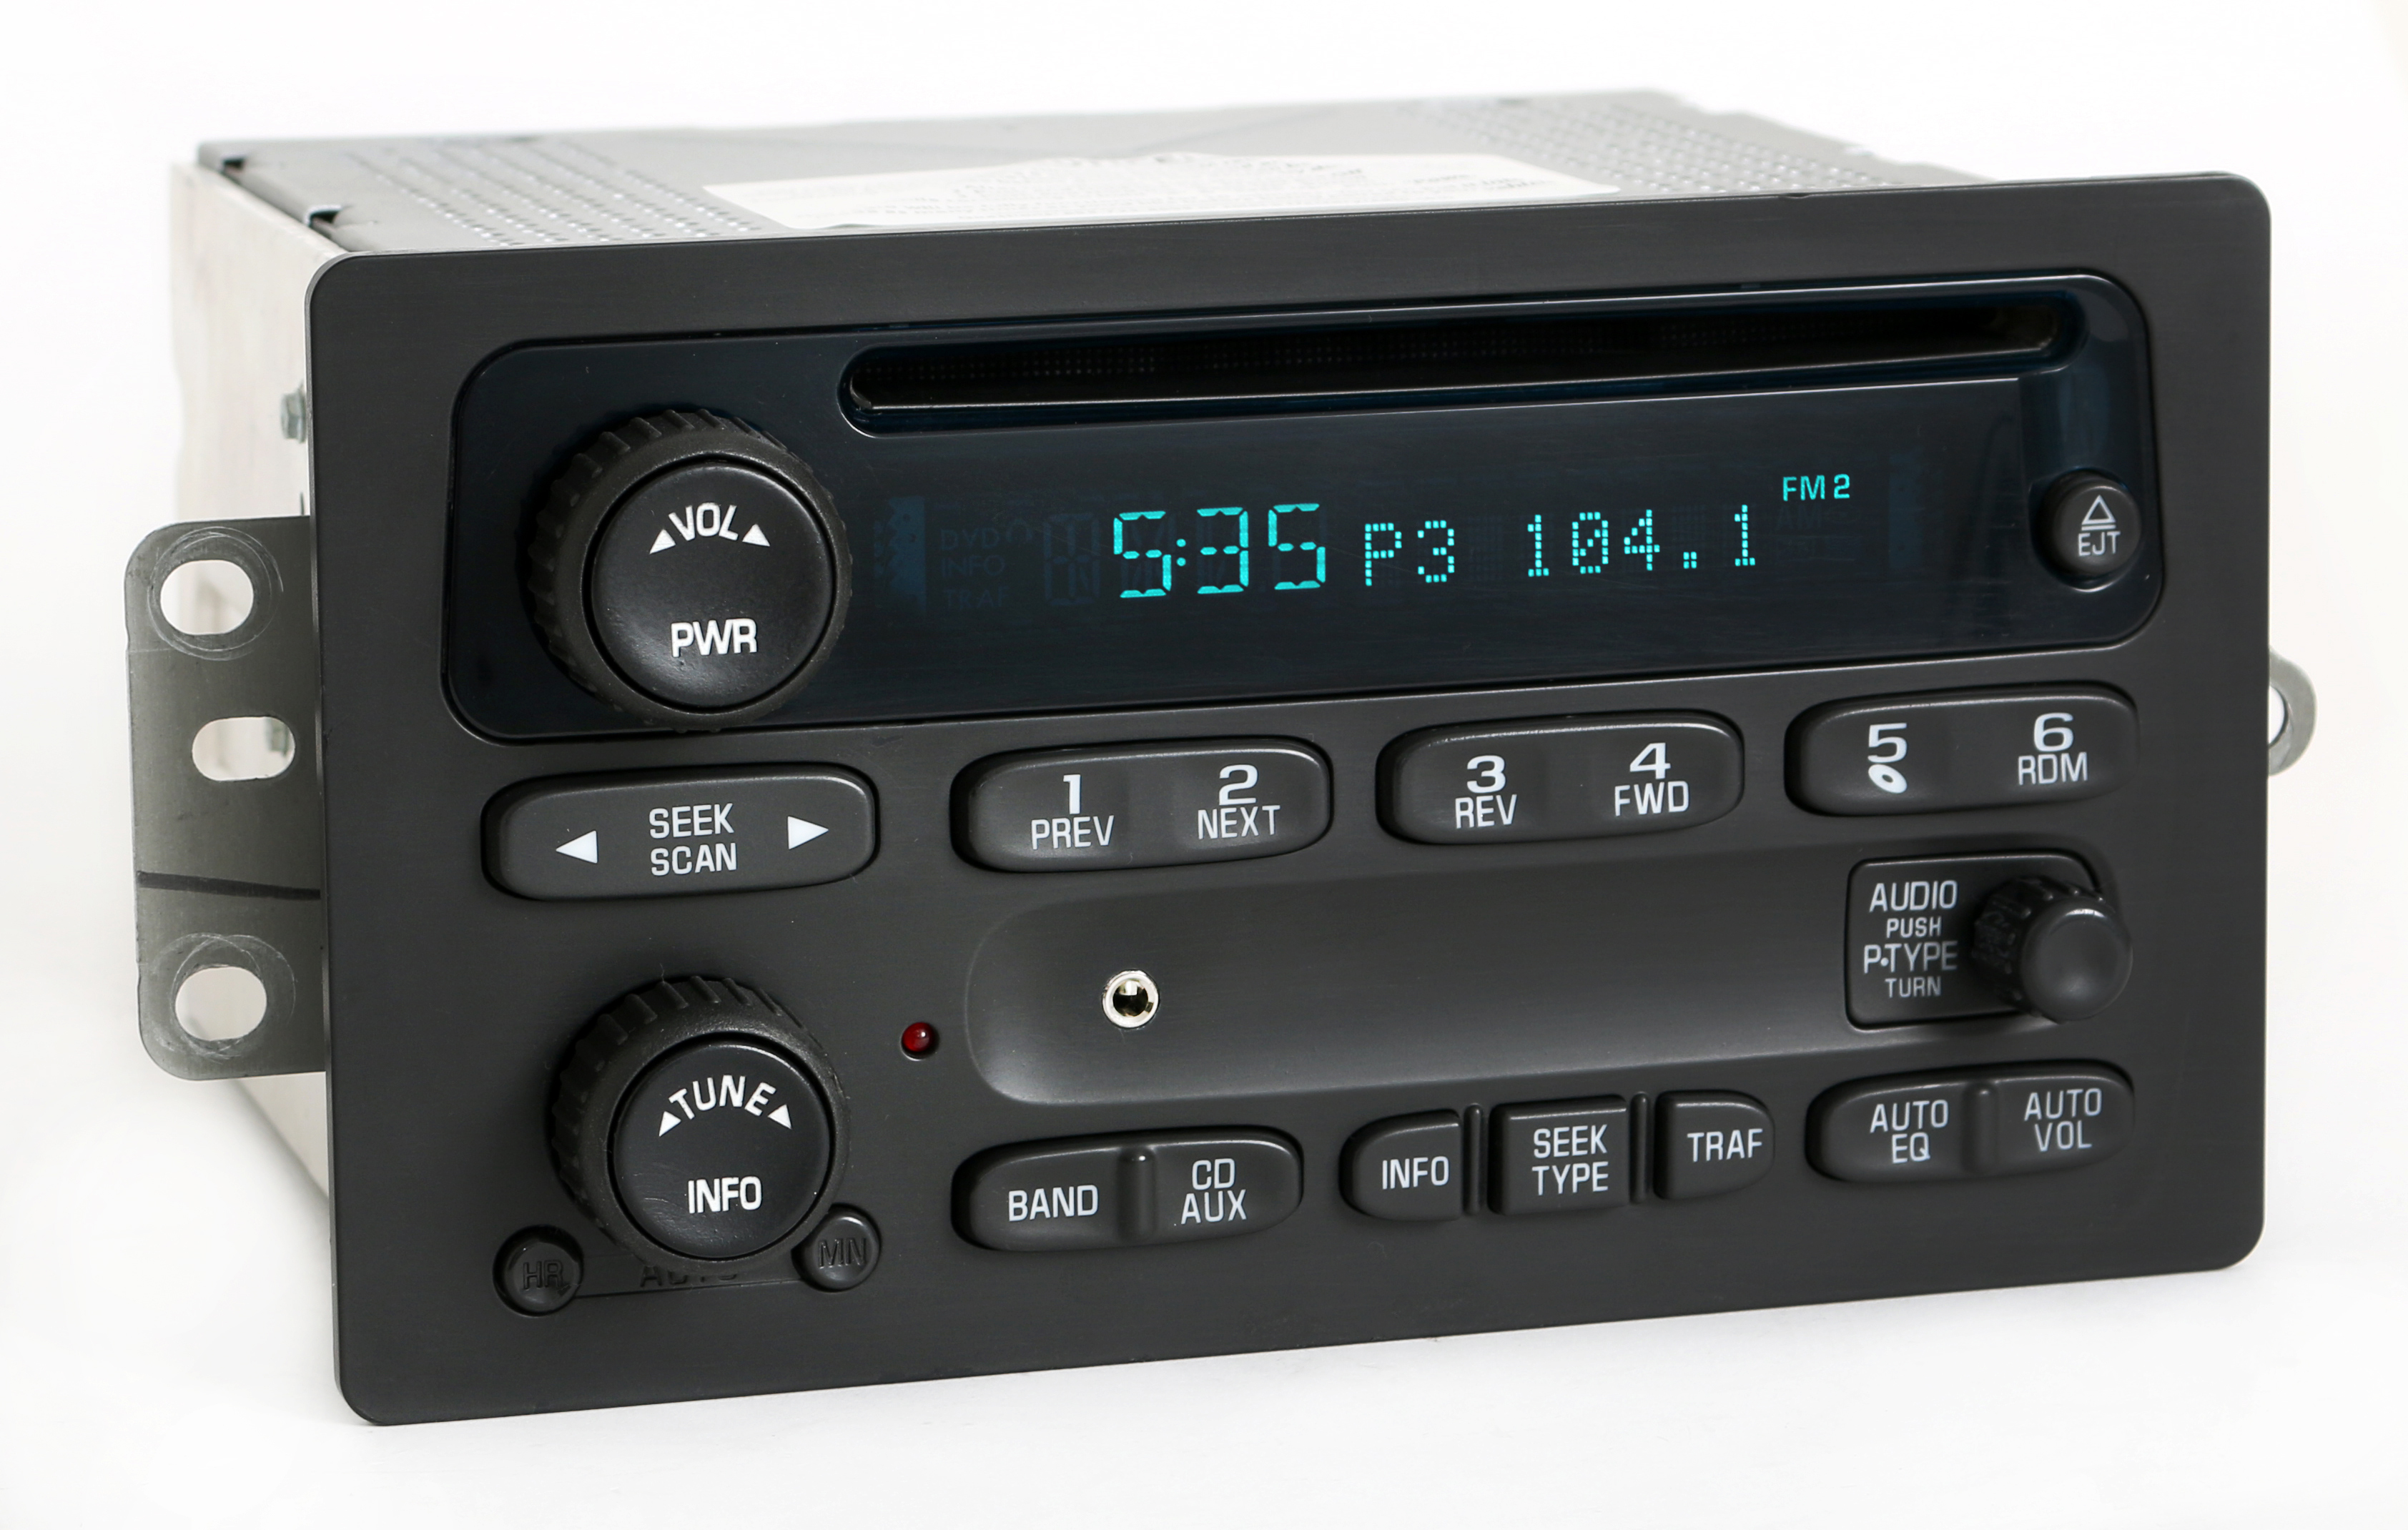 Chevy GMC 03-05 Truck Radio AM FM CD Player Upgraded w Auxiliary Input 10357894 Refurbished by GM